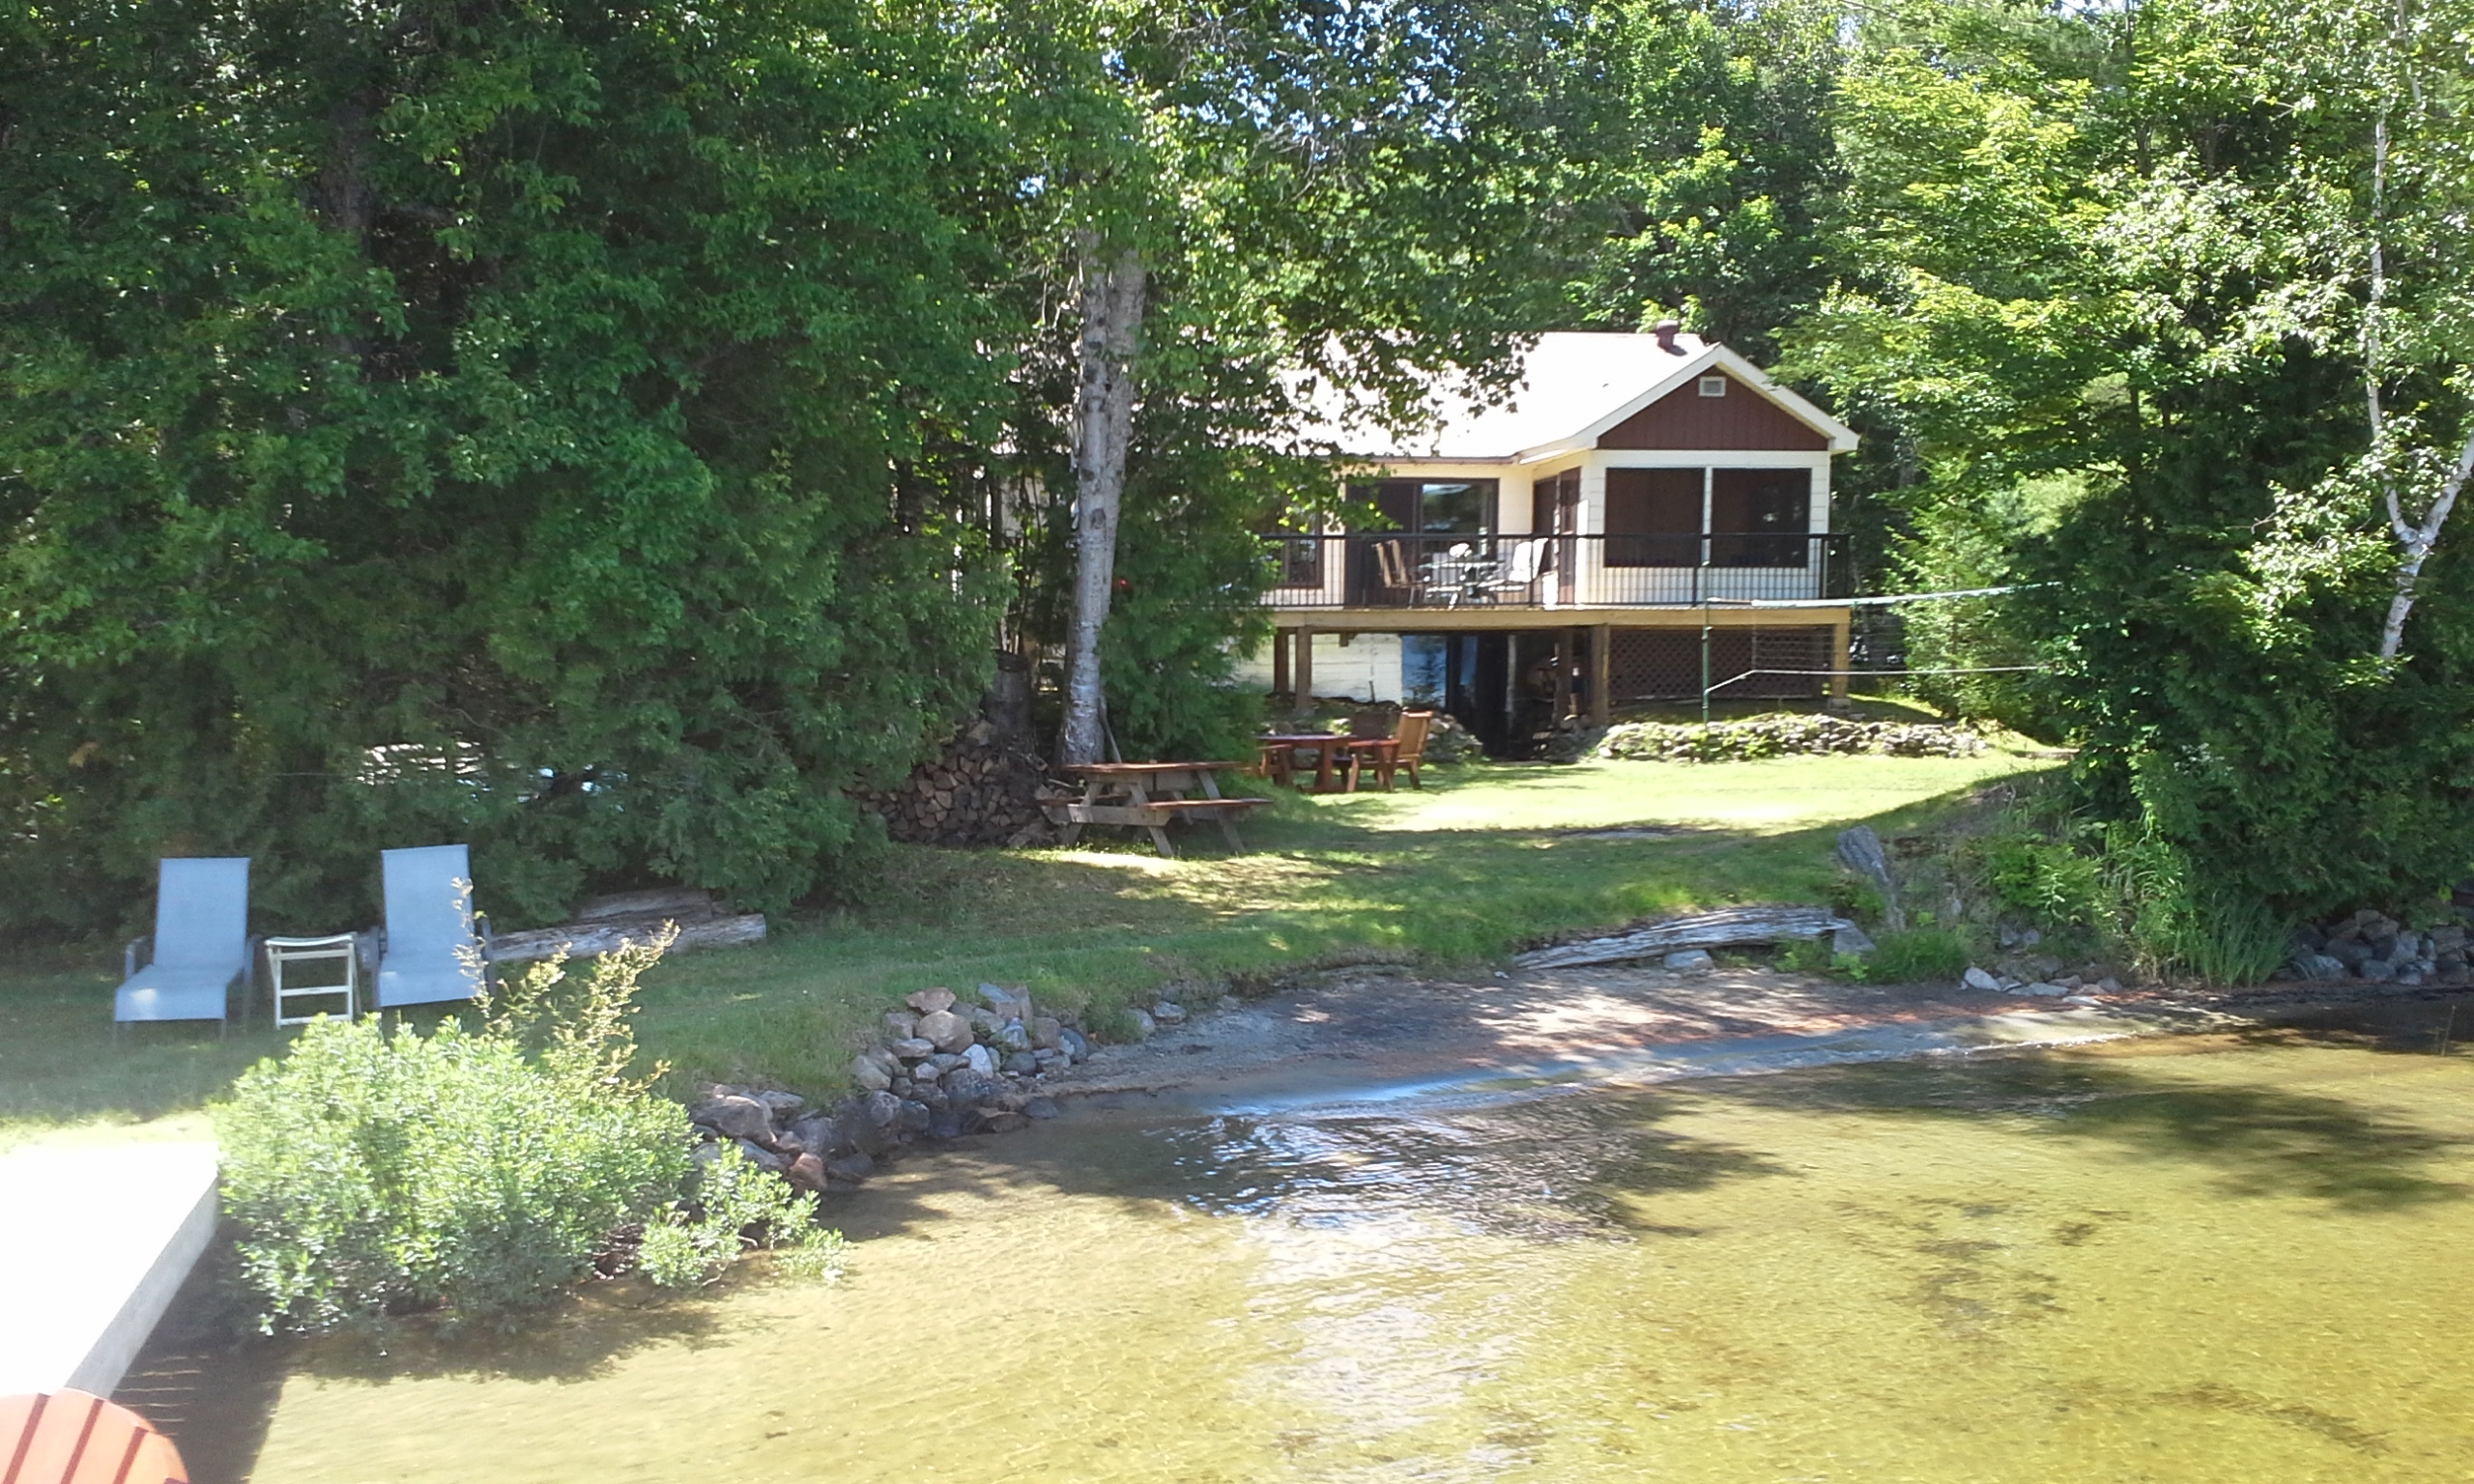 cottages resort cottage vacation wildwood self bayview muskoka packages our room resorts living rentals accommodations catering ontario family